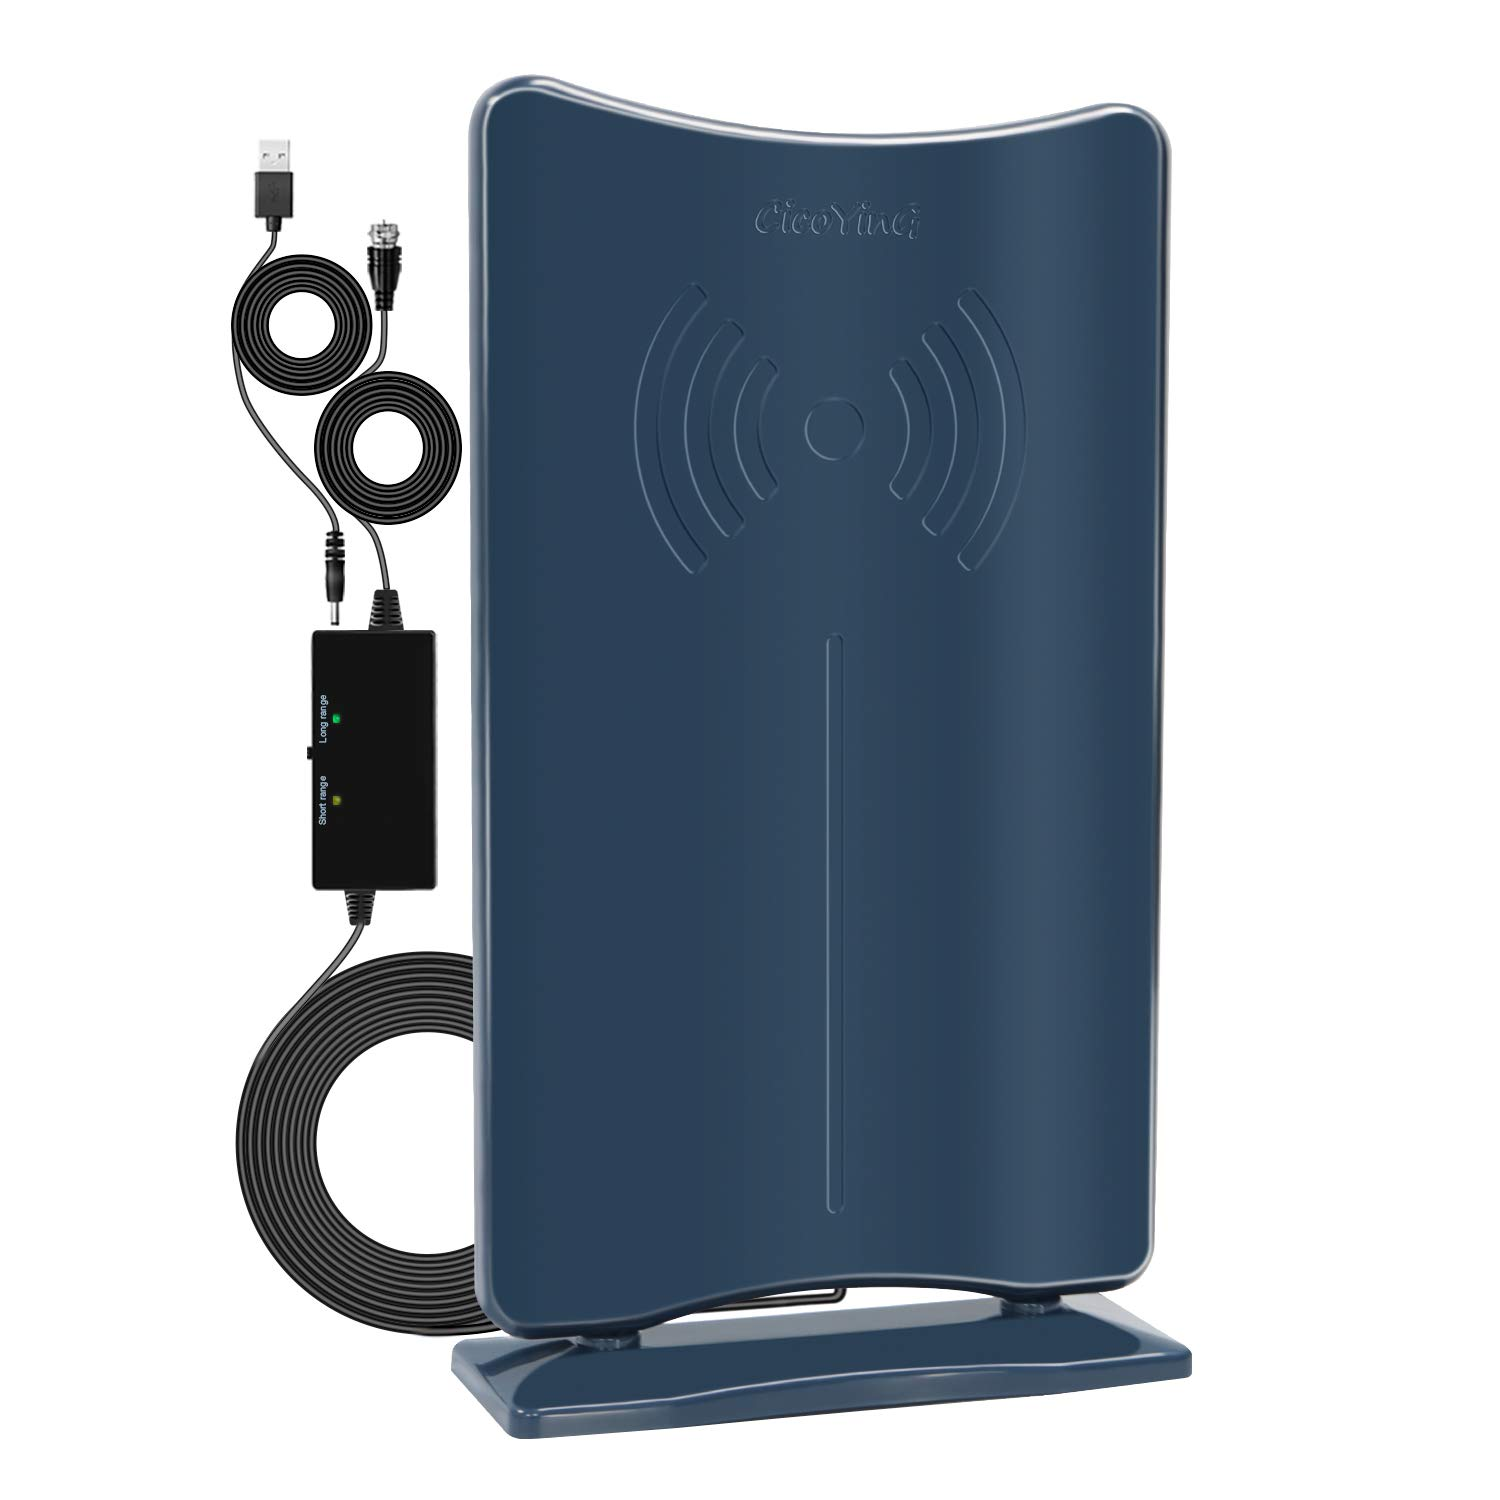 [2019 Latest HIGH GAIN] Amplified HD Digital TV Antenna - Long 80 Miles Range HDTV Antenna Indoor Amplifier Signal Booster, Support 4K 1080P & All Older TV's Free Channels w/Low Error Rate -Navy Blue by CicoYinG